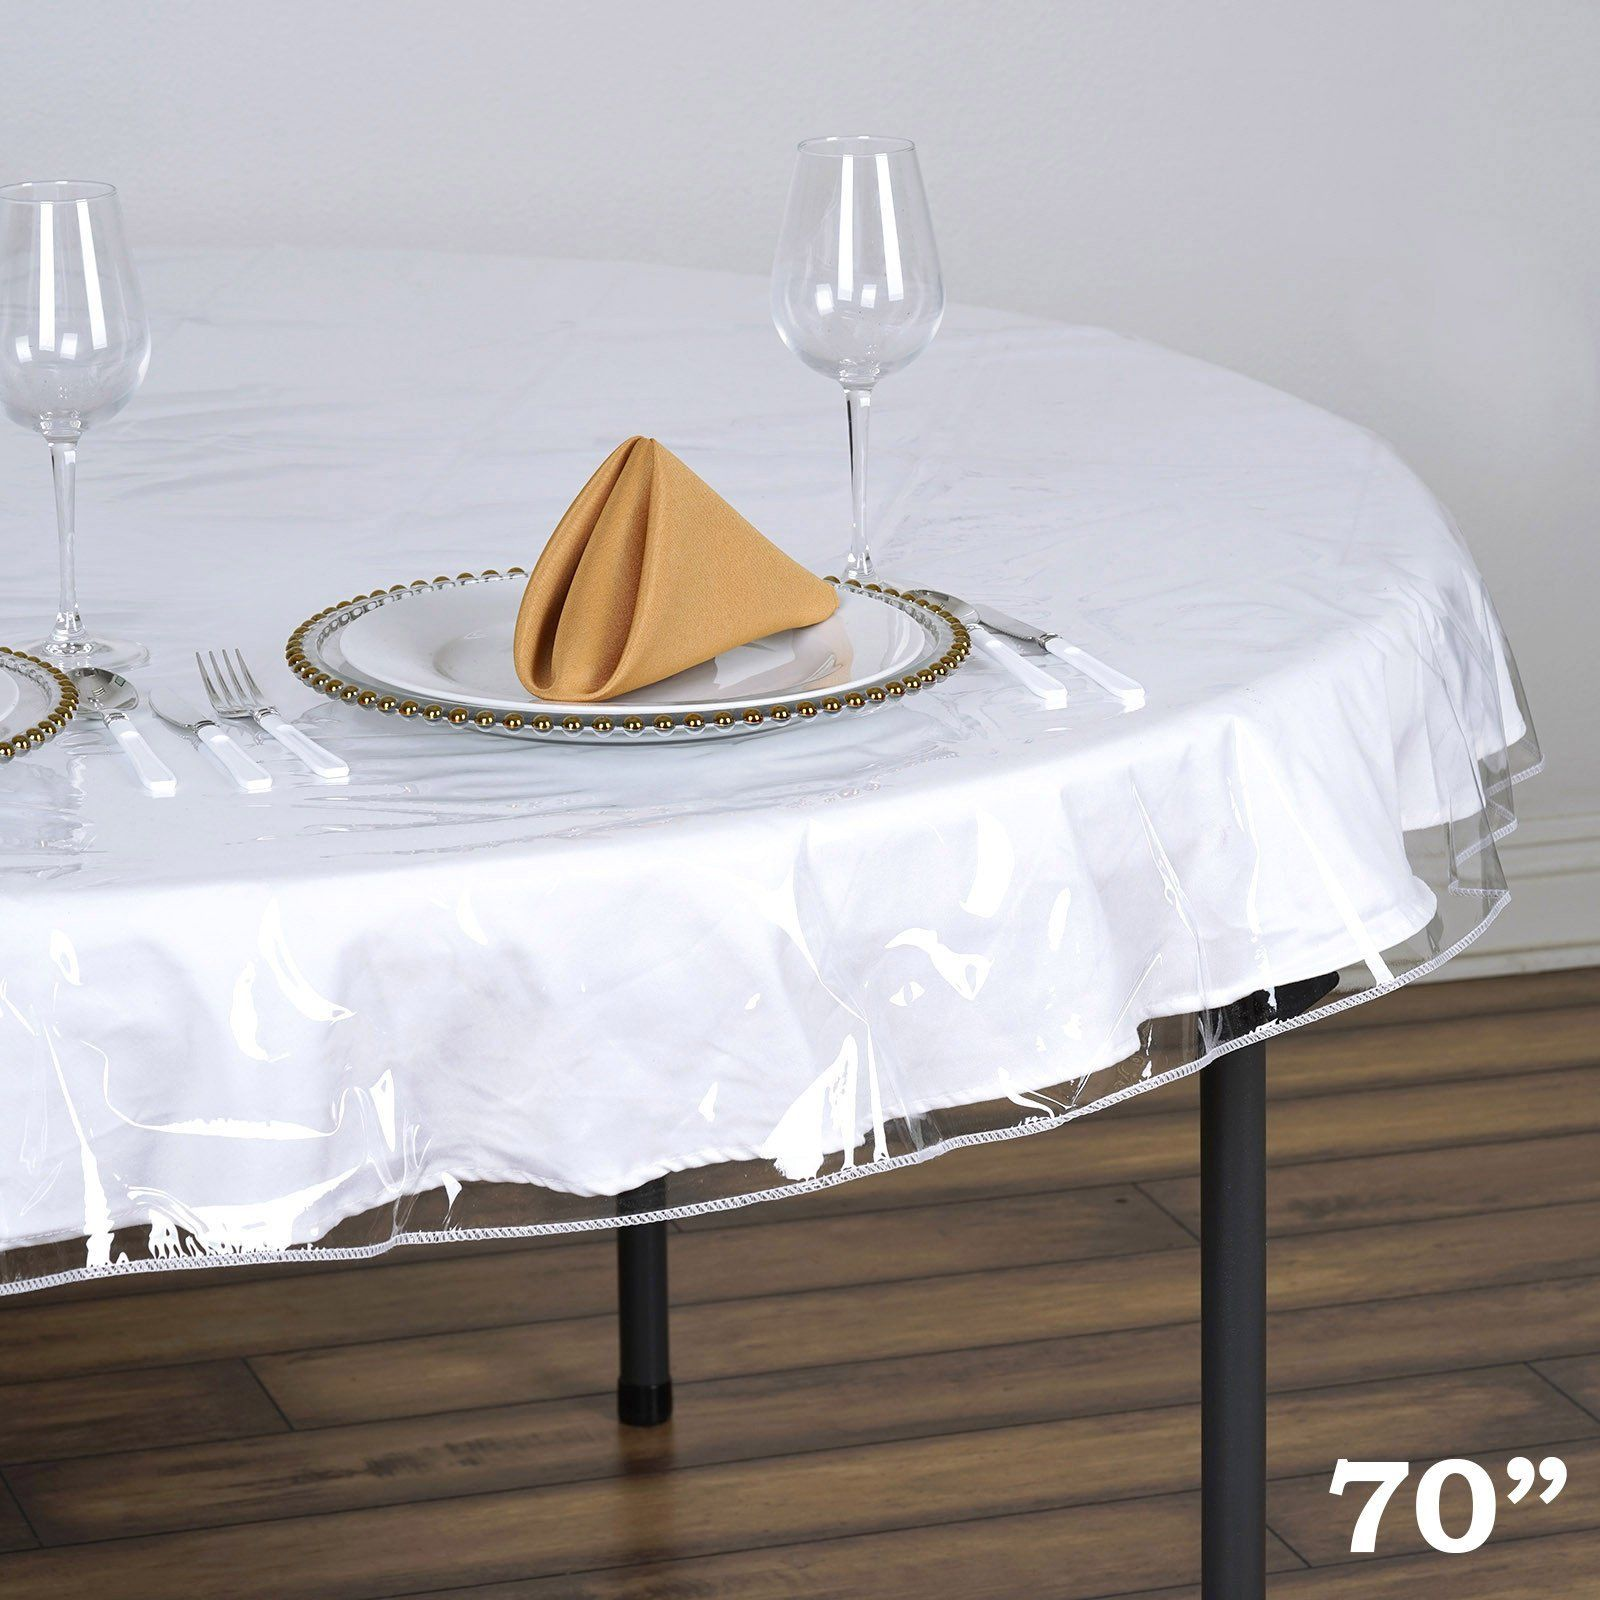 70 Clear 10 Mil Thick Eco Friendly Vinyl Waterproof Tablecloth Pvc Round Disposable Tablecloth Vinyl Tablecloth Table Cloth Waterproof Tablecloth